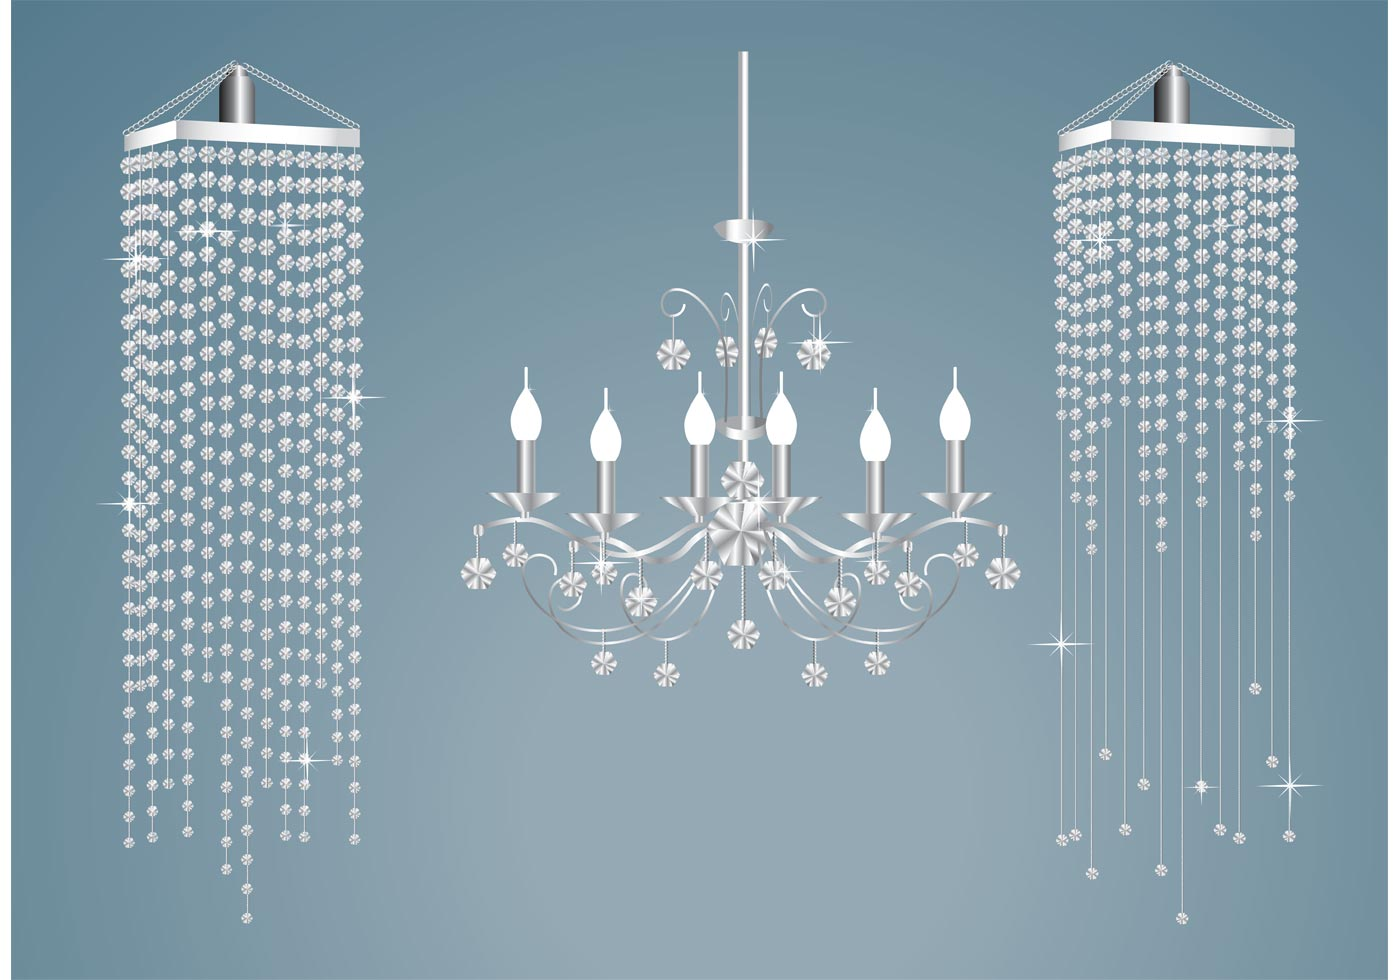 Crystal Chandelier Vectors Download Free Vector Art